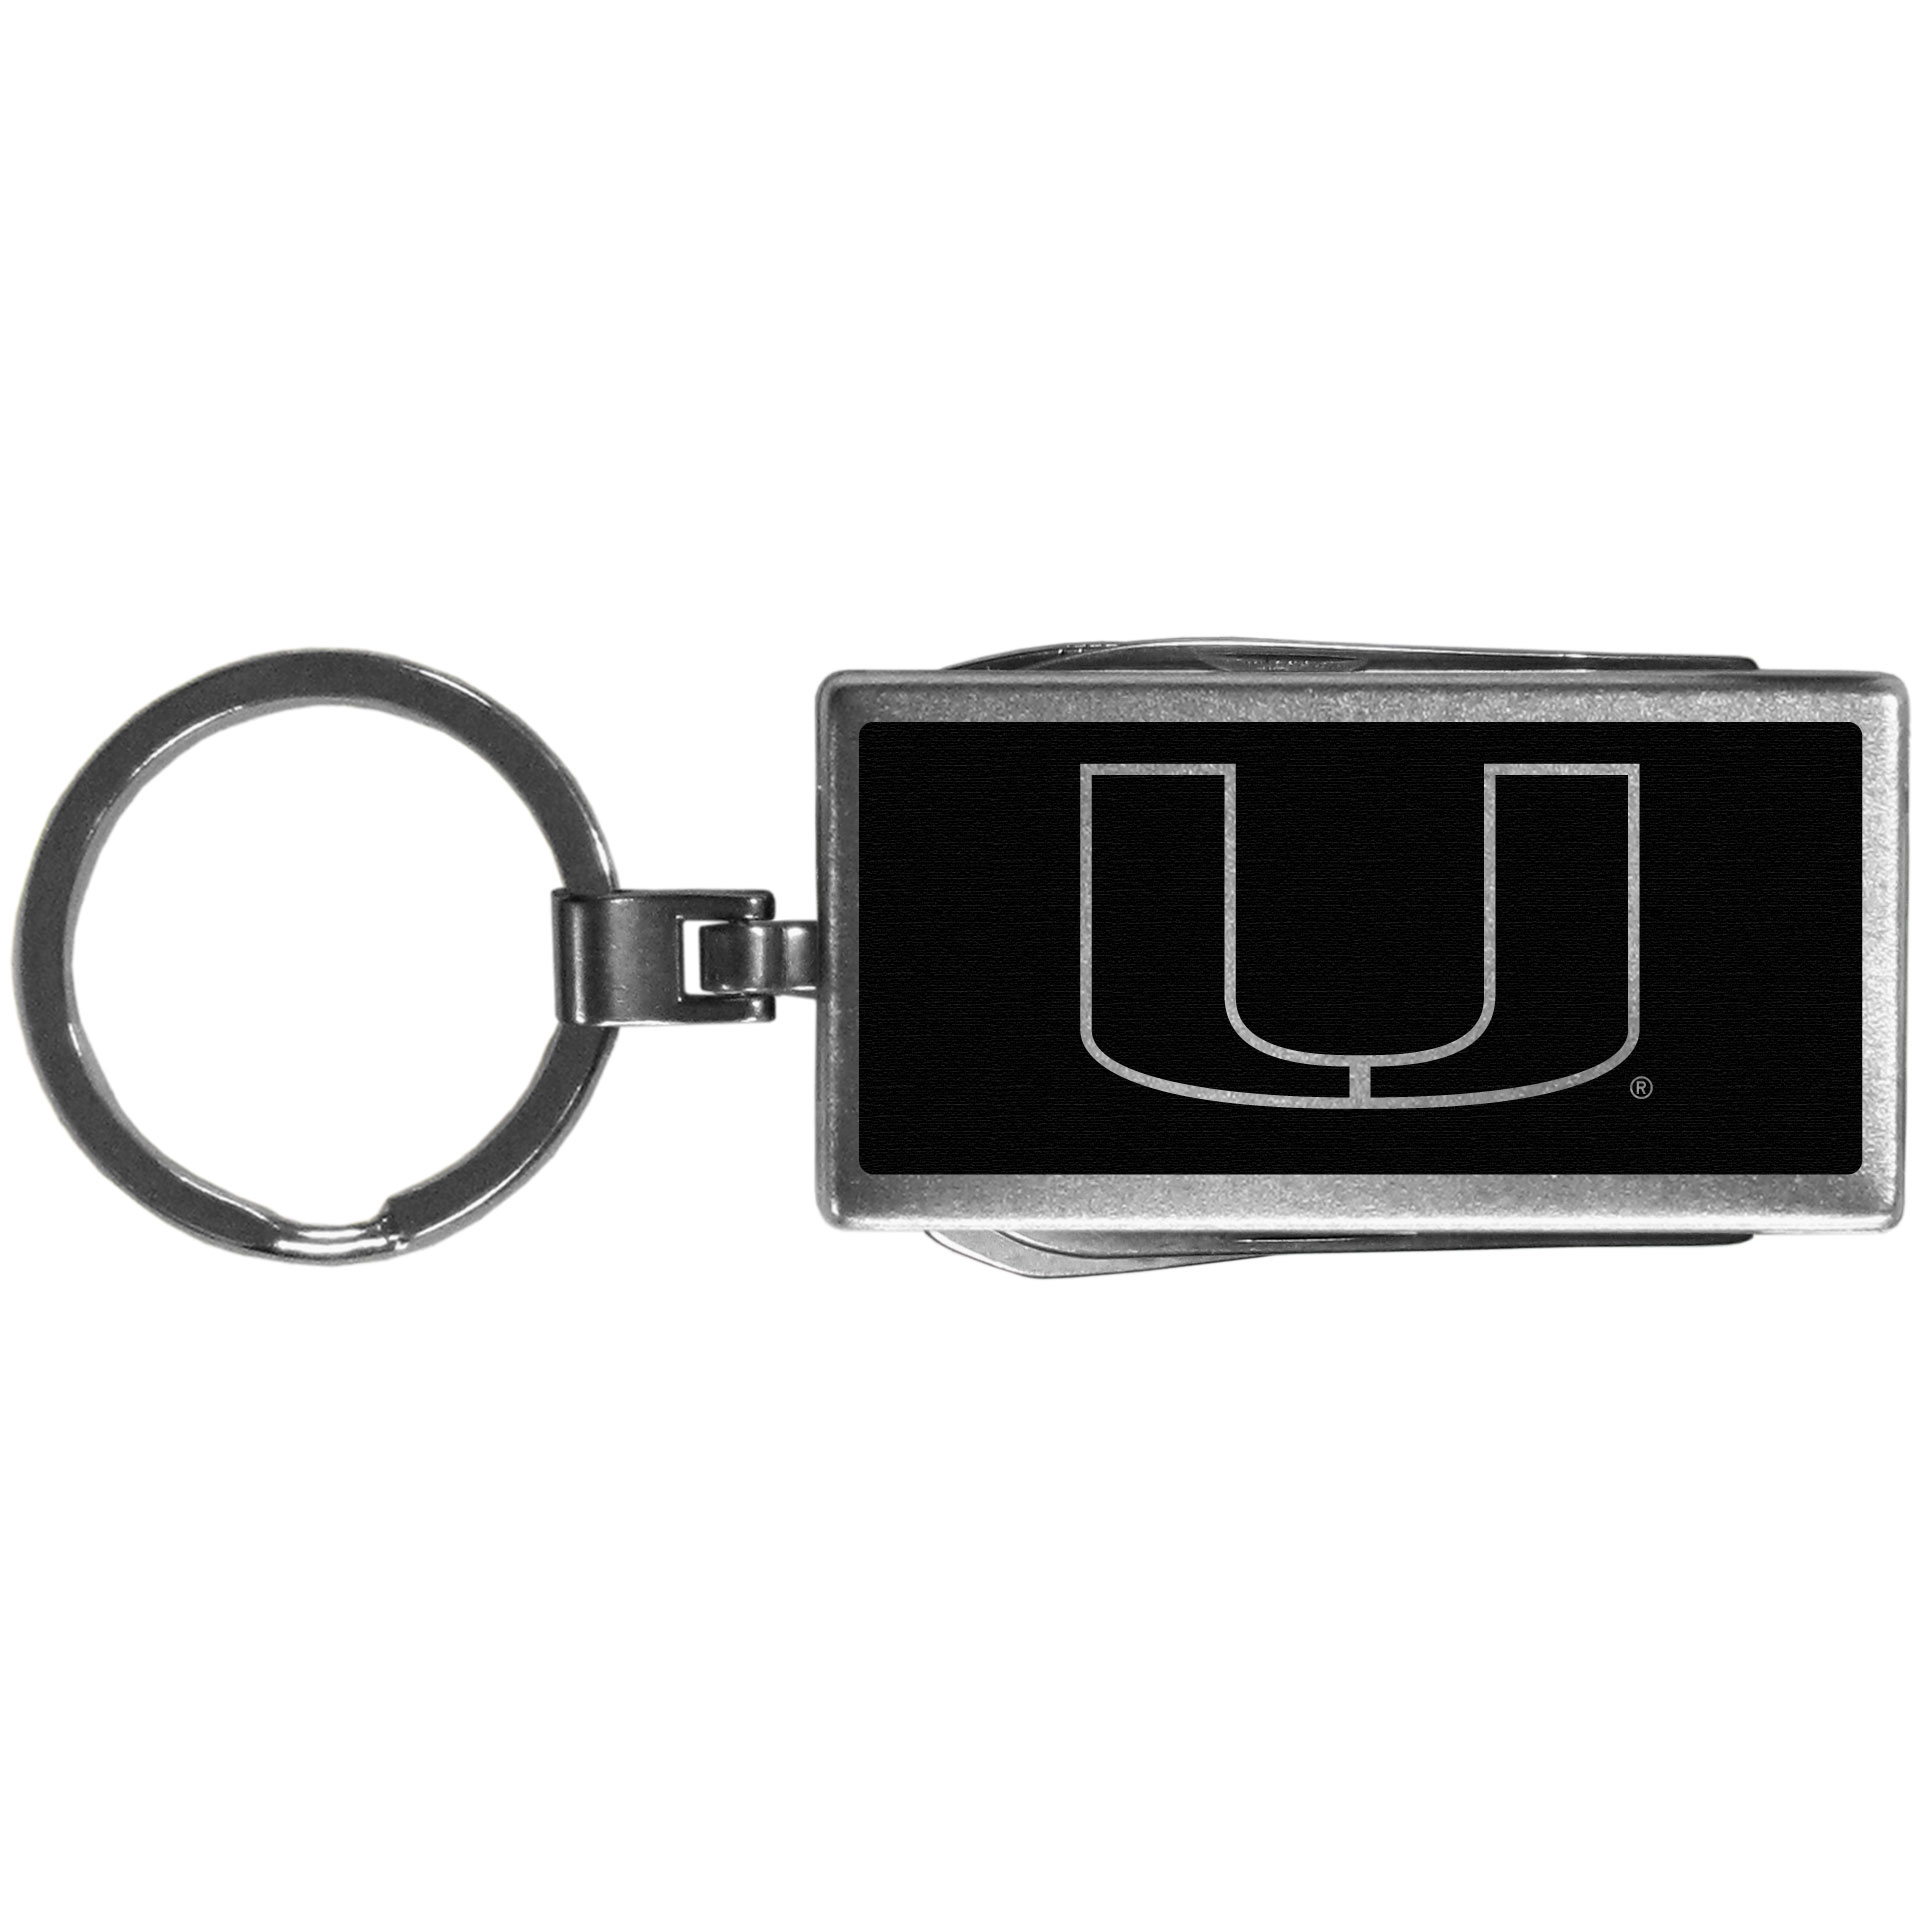 Miami Hurricanes Multi-tool Key Chain, Black - Be the hero at the tailgate, camping, or on a Friday night with your Miami Hurricanes Multi-Tool Keychain which comes complete with bottle opener, scissors, knife, nail file and screw driver. Be it opening a package or a beverage Siskiyou's Multi-Tool Keychain goes wherever your keys do. The keychain hangs at 4 inches long when closed.